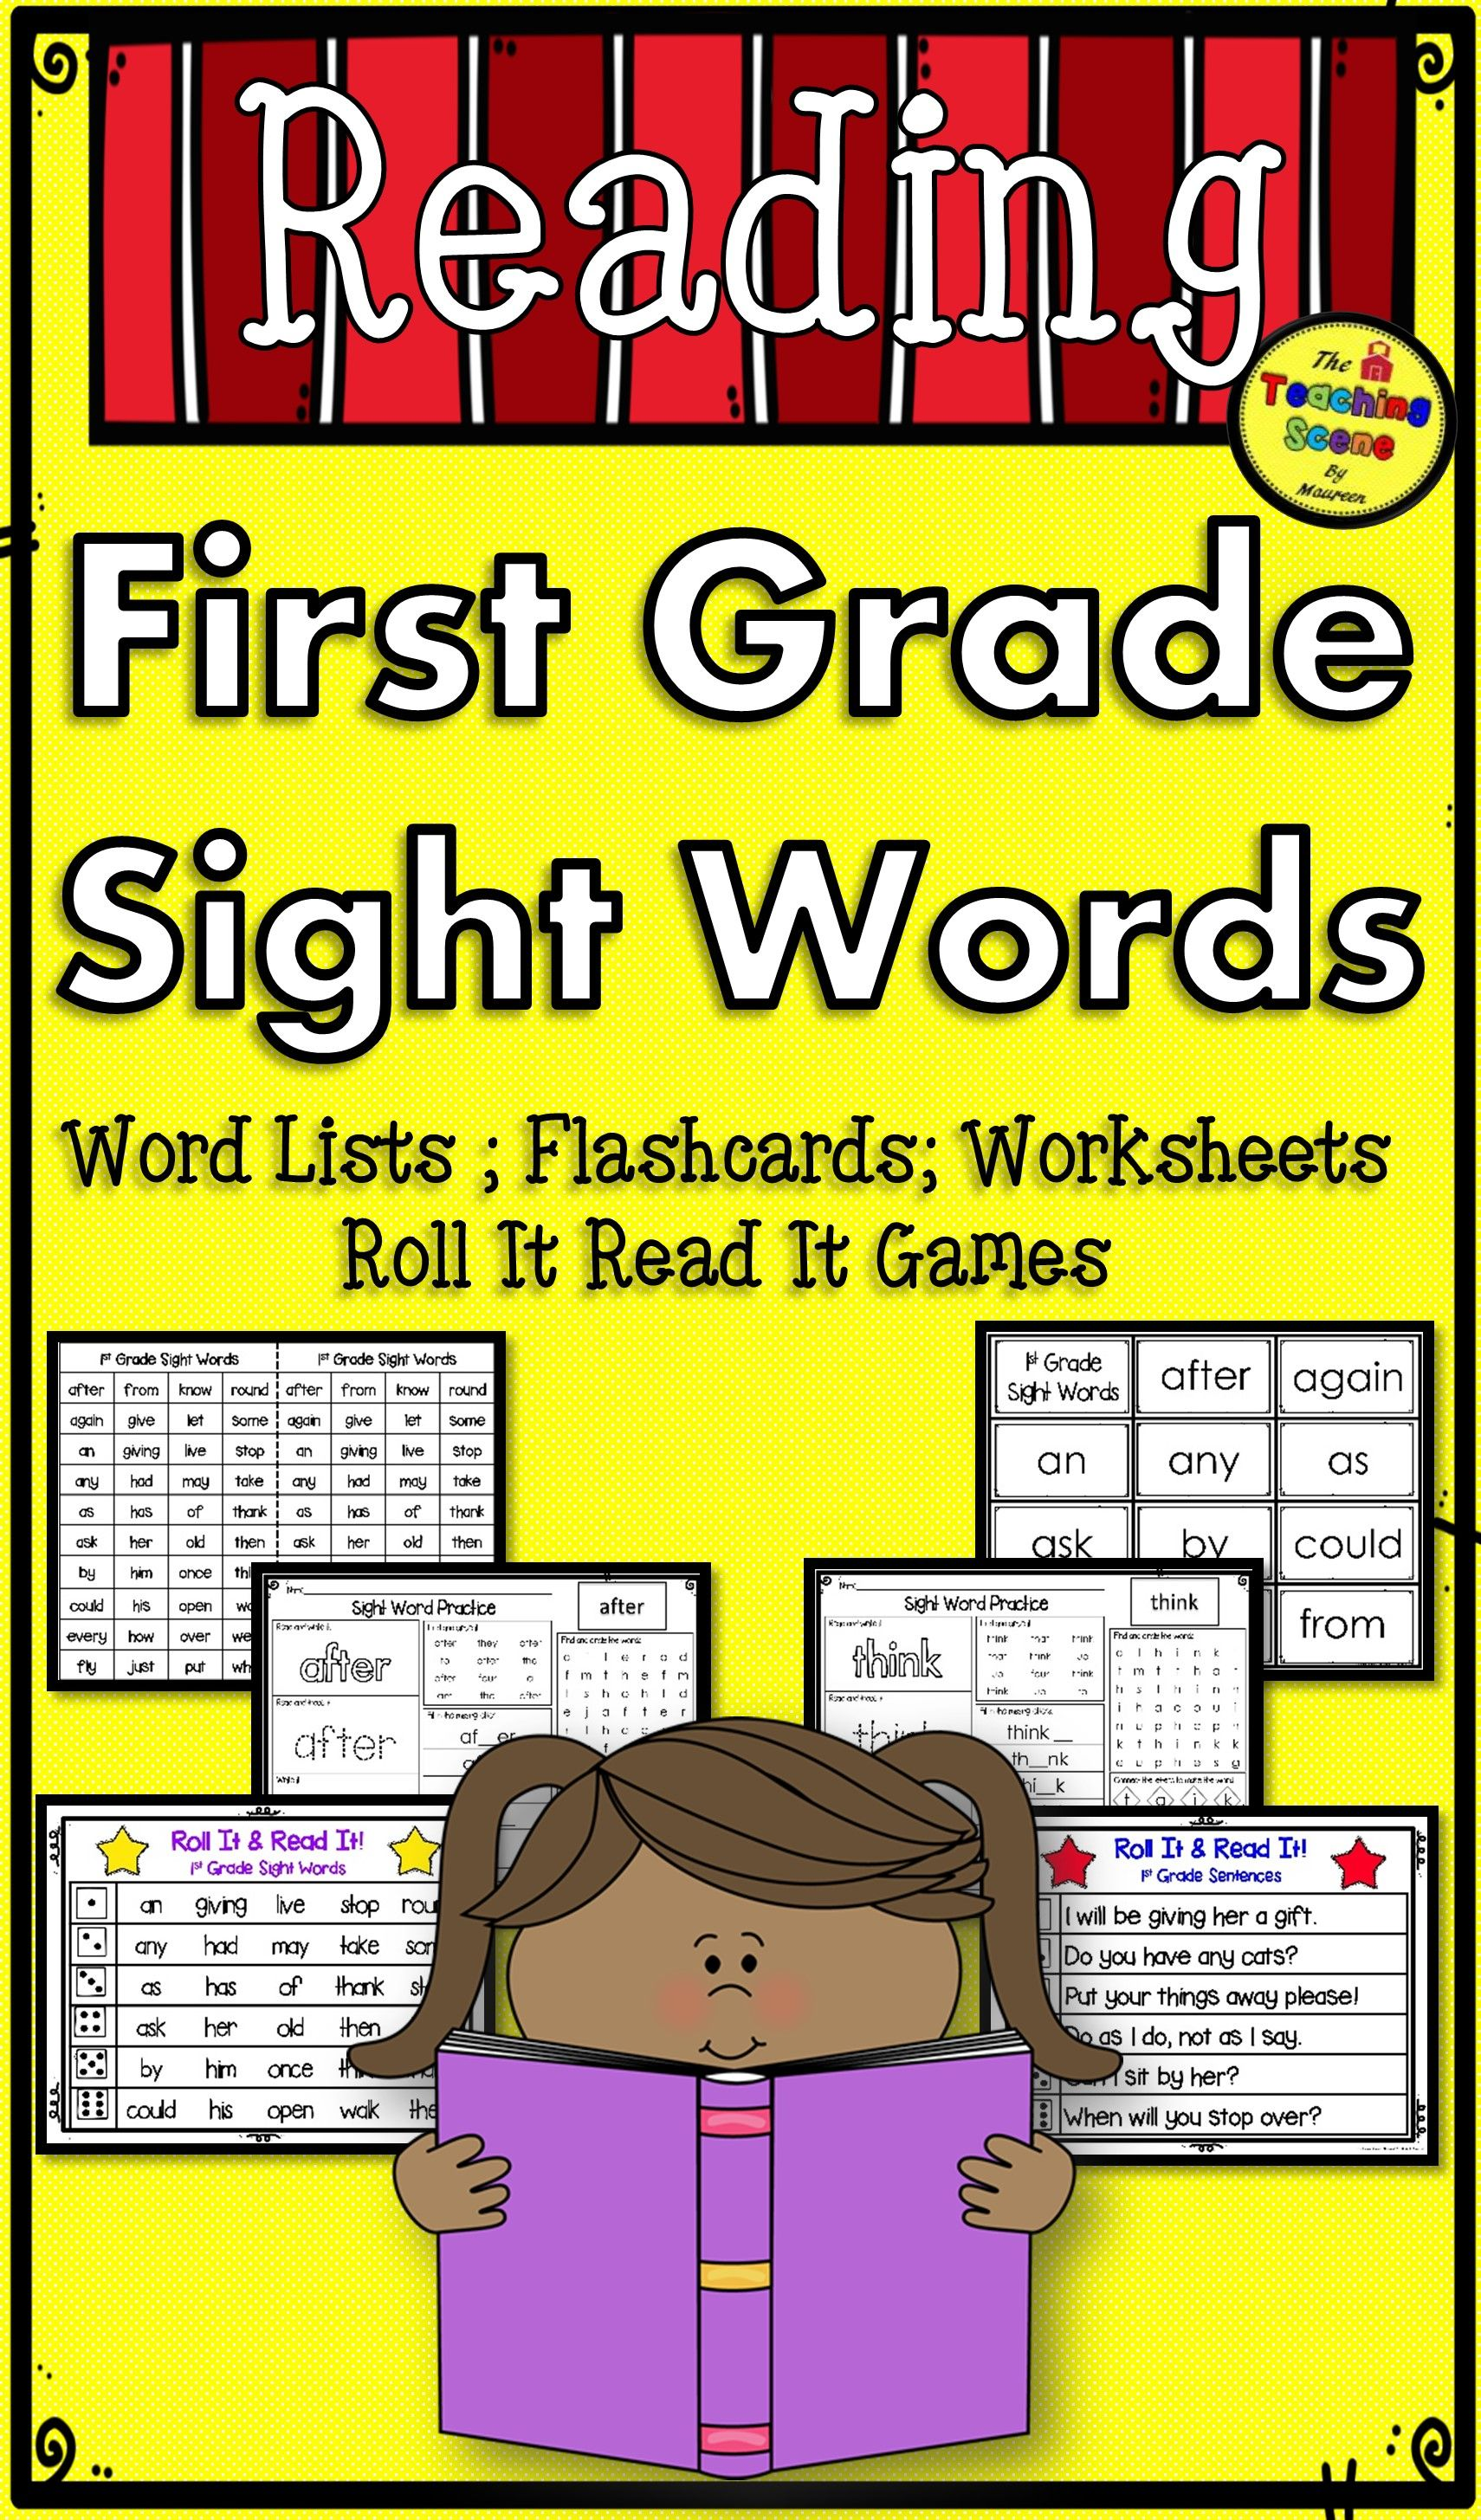 First Grade Sight Word Lists Flashcards Worksheets